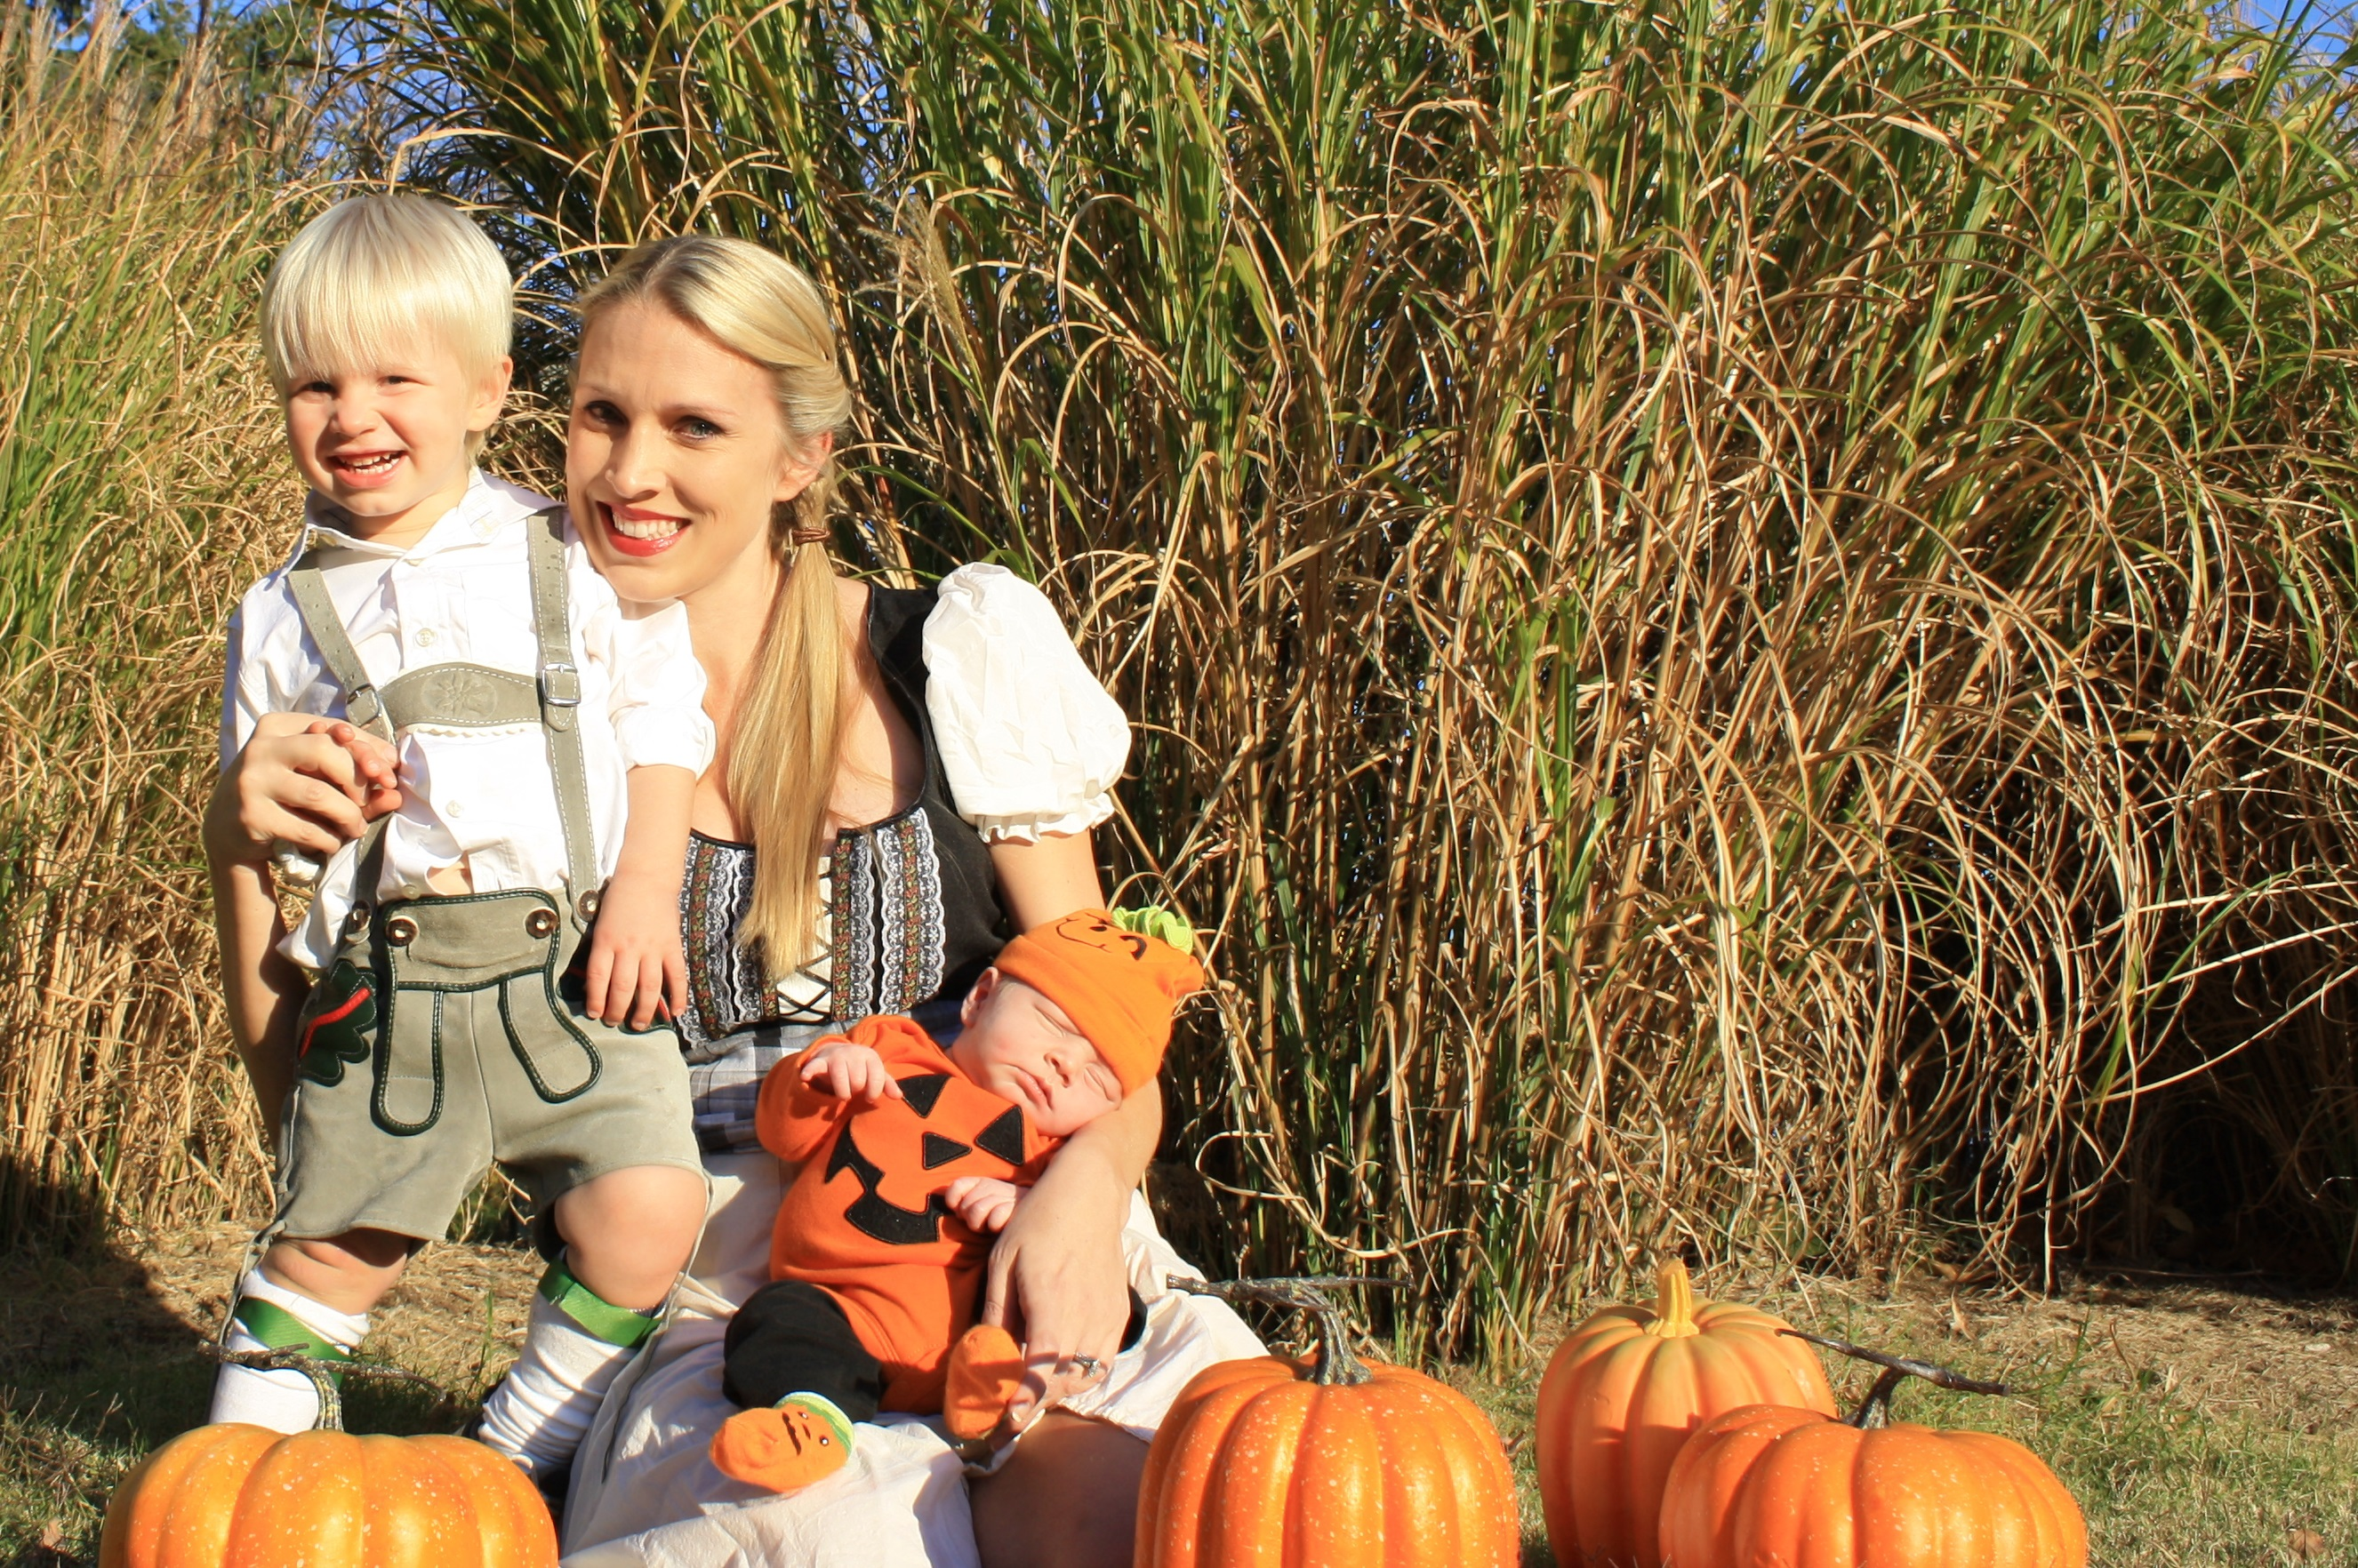 Pumpkin_picking_farms_things_to_do_kentucky_with_kids_louisville